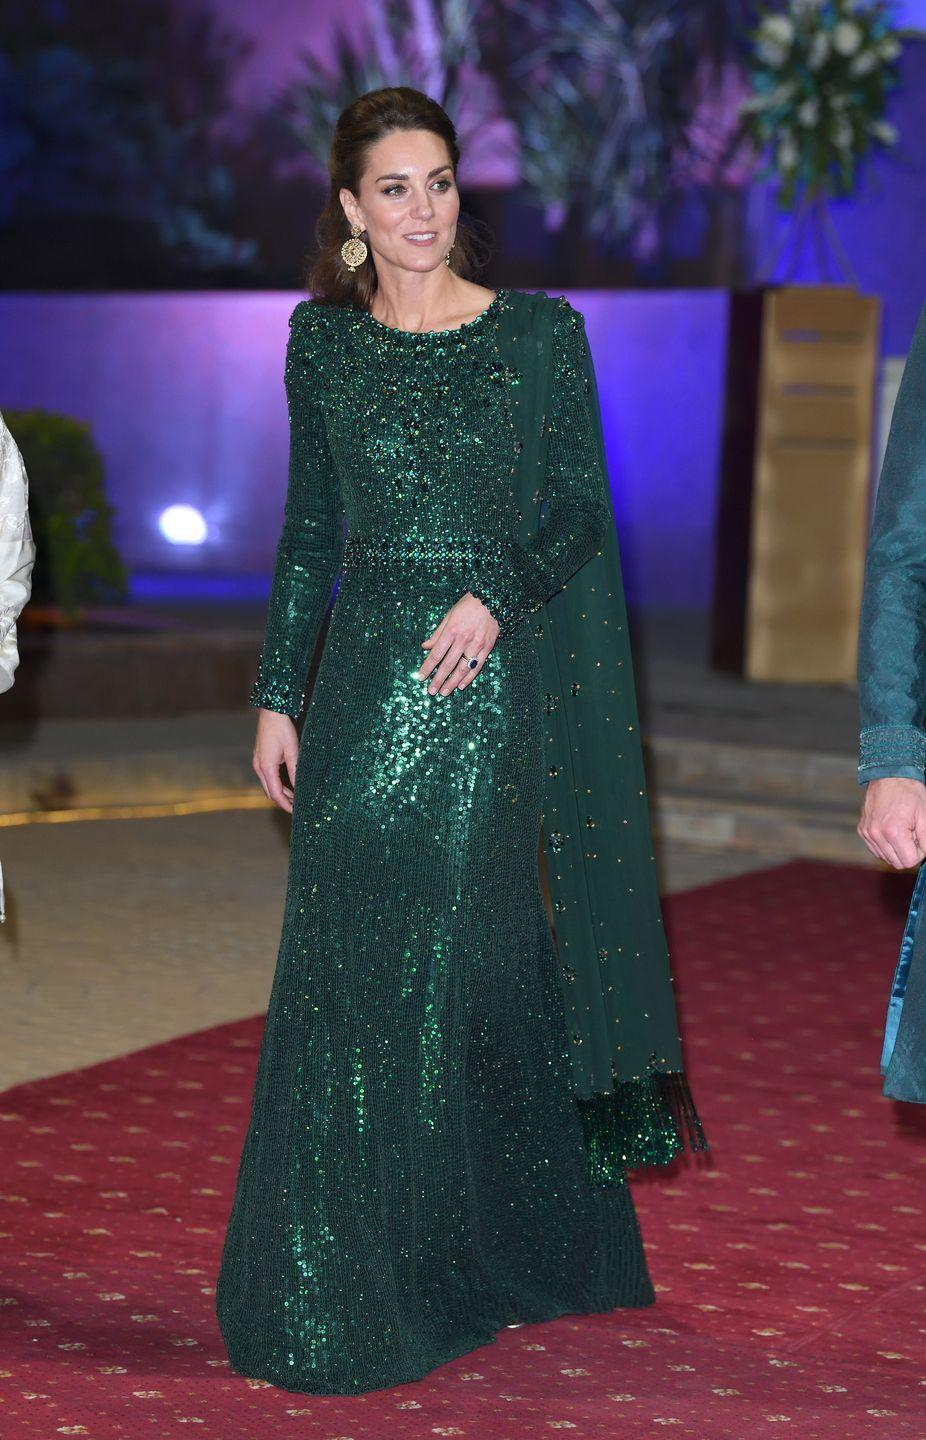 <p>When Kate Middleton arrived at a reception in Pakistan in 2019 in a glittering green sequin gown by designer Jenny Packham, it was hard not to compare her to the mermaid Princess. </p>